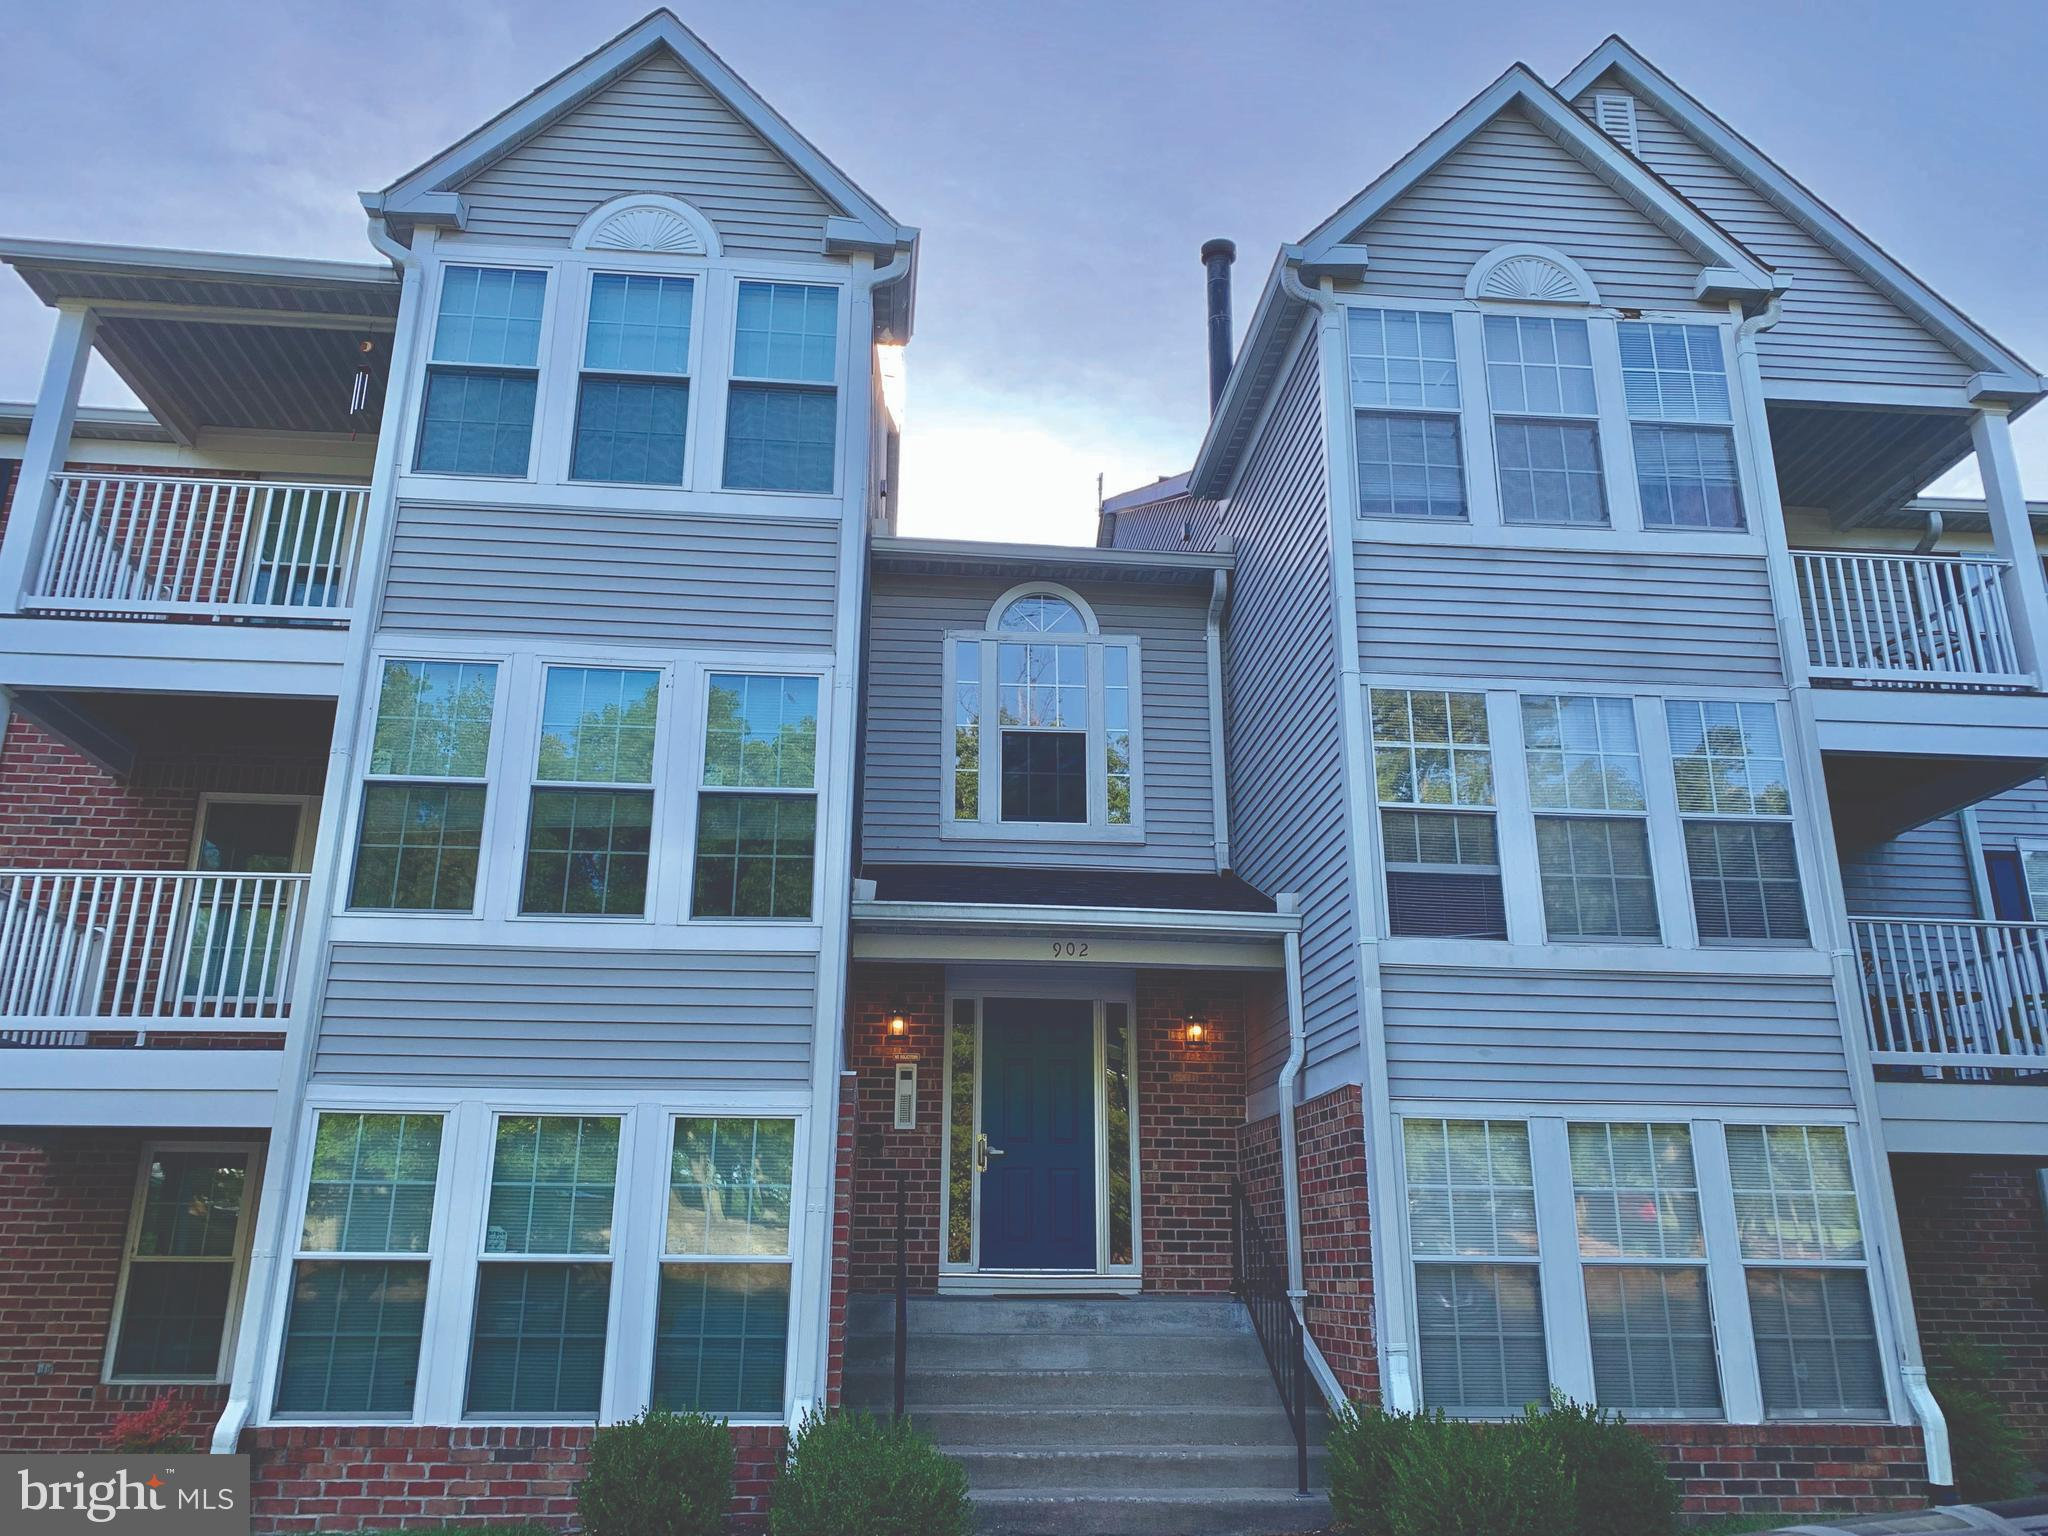 AS IS condition. Secure Building! This condo offers master bedroom with private bath, 2nd bath for 2nd bedroom, laundry room, galley kitchen with plenty of storage. Spacious  living and dining combo. Great for entertaining! Bonus room off deck! Plenty of parking.